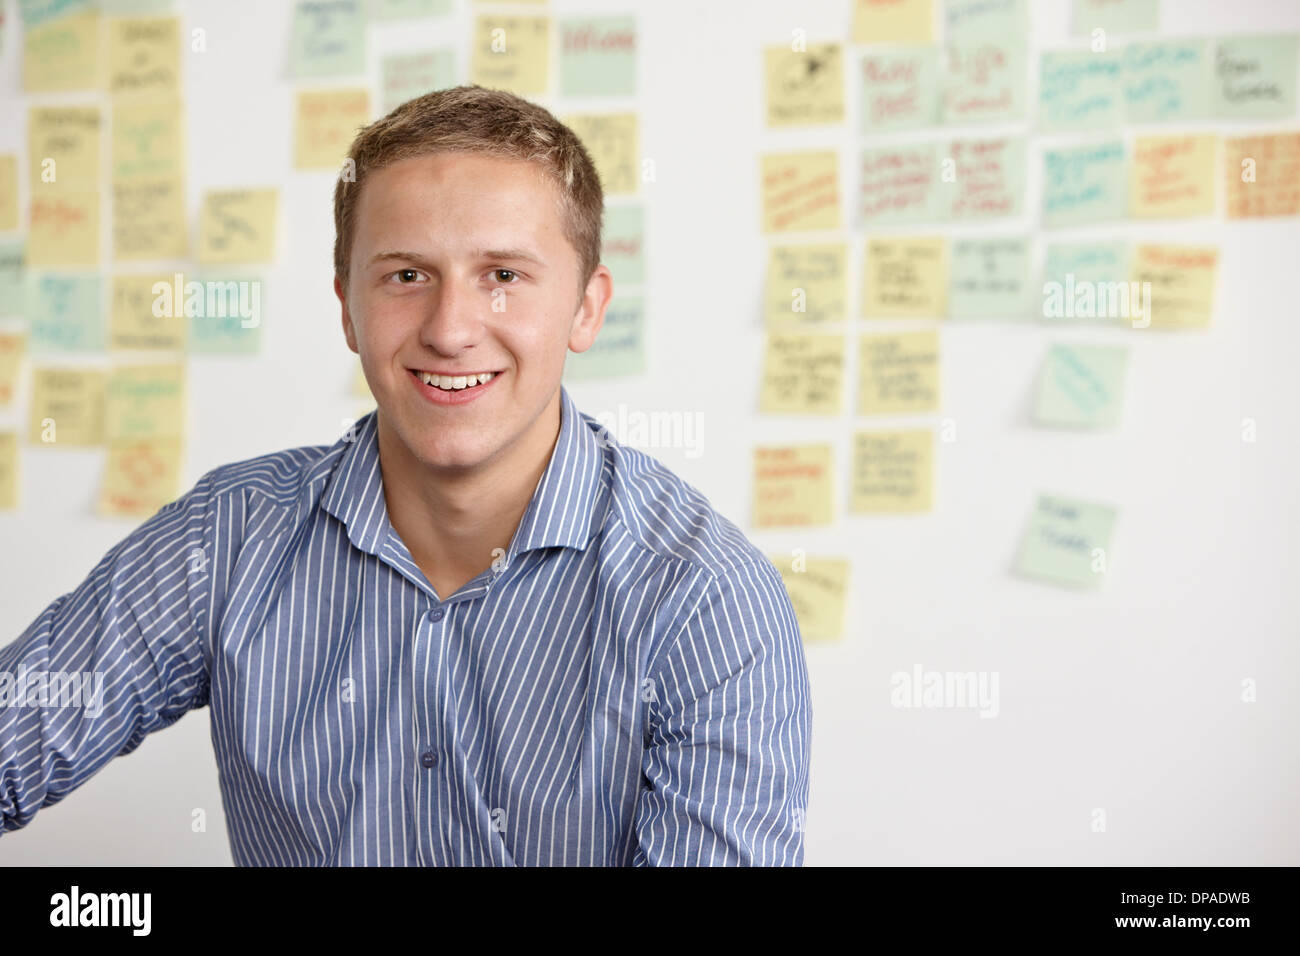 Portrait of young man with adhesive notes in background - Stock Image